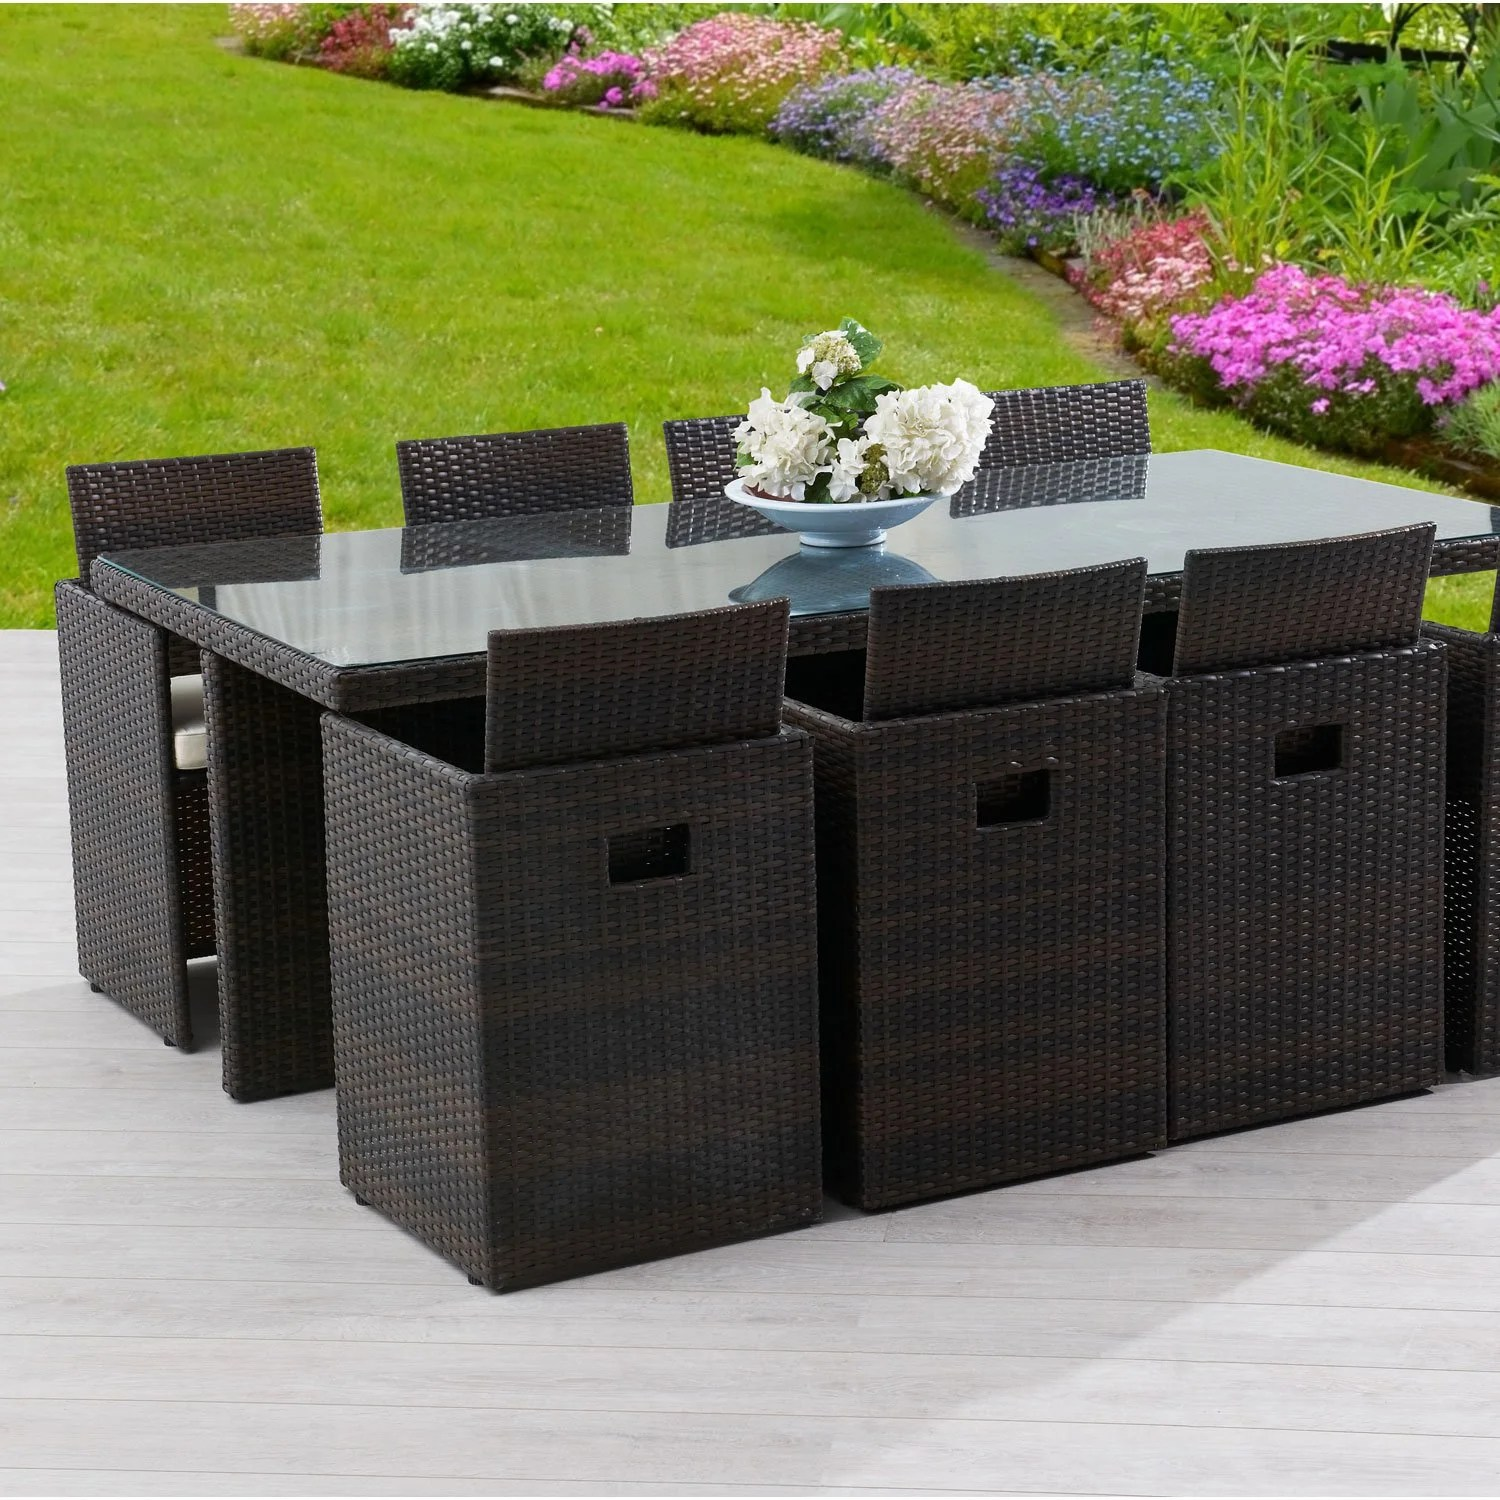 Leroy Merlin Table De Jardin Salon De Jardin Encastrable Dcb Garden 1 Table 43 8